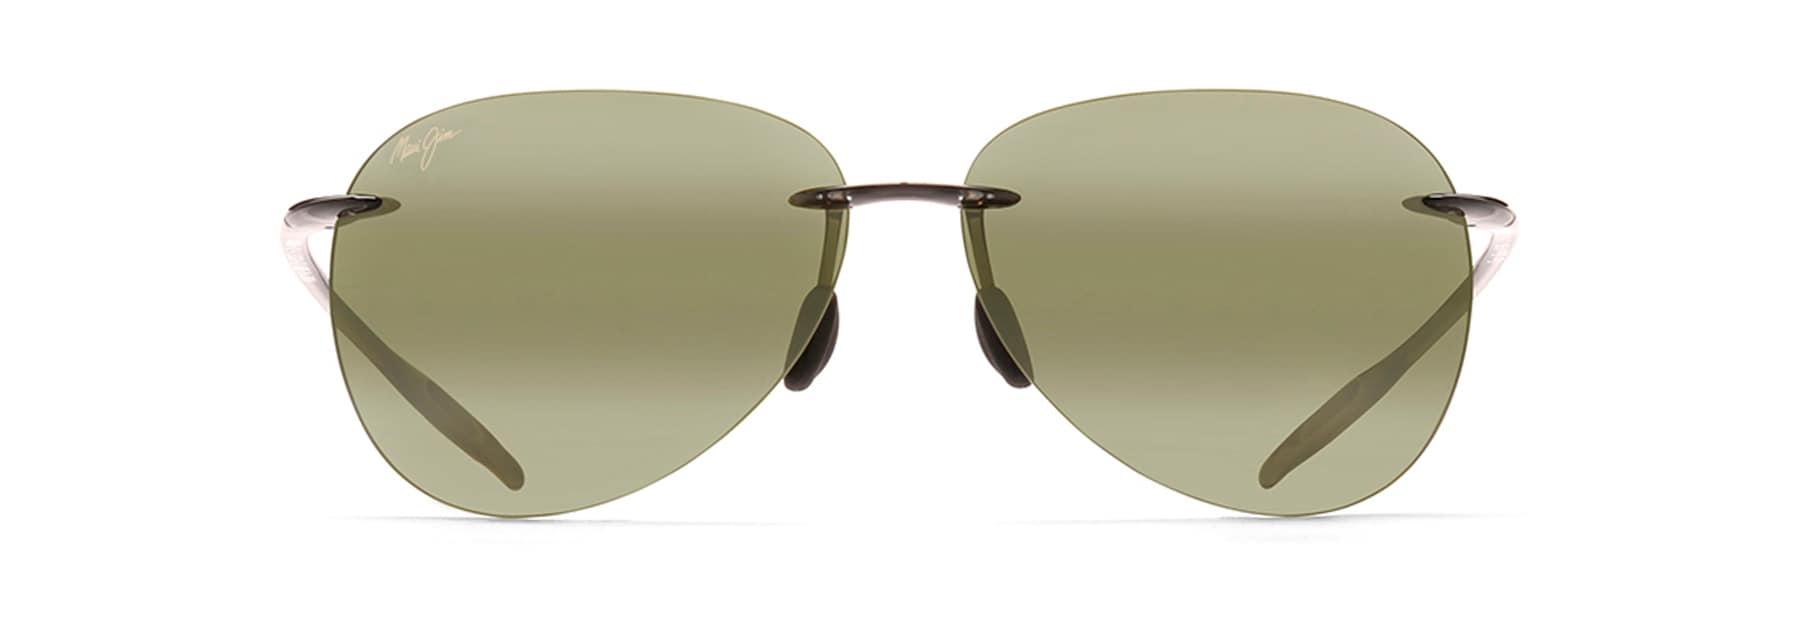 ef06bb88e Sugar Beach Polarised Sunglasses | Maui Jim®